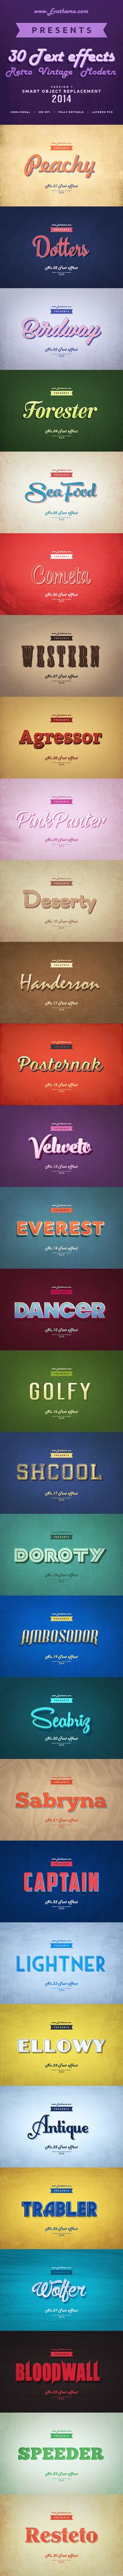 30 Retro & Modern Style Text Effects for Photoshop. Download here: http://graphicriver.net/item/30-retro-modern-style-text-effects/8775740?ref=ksioks